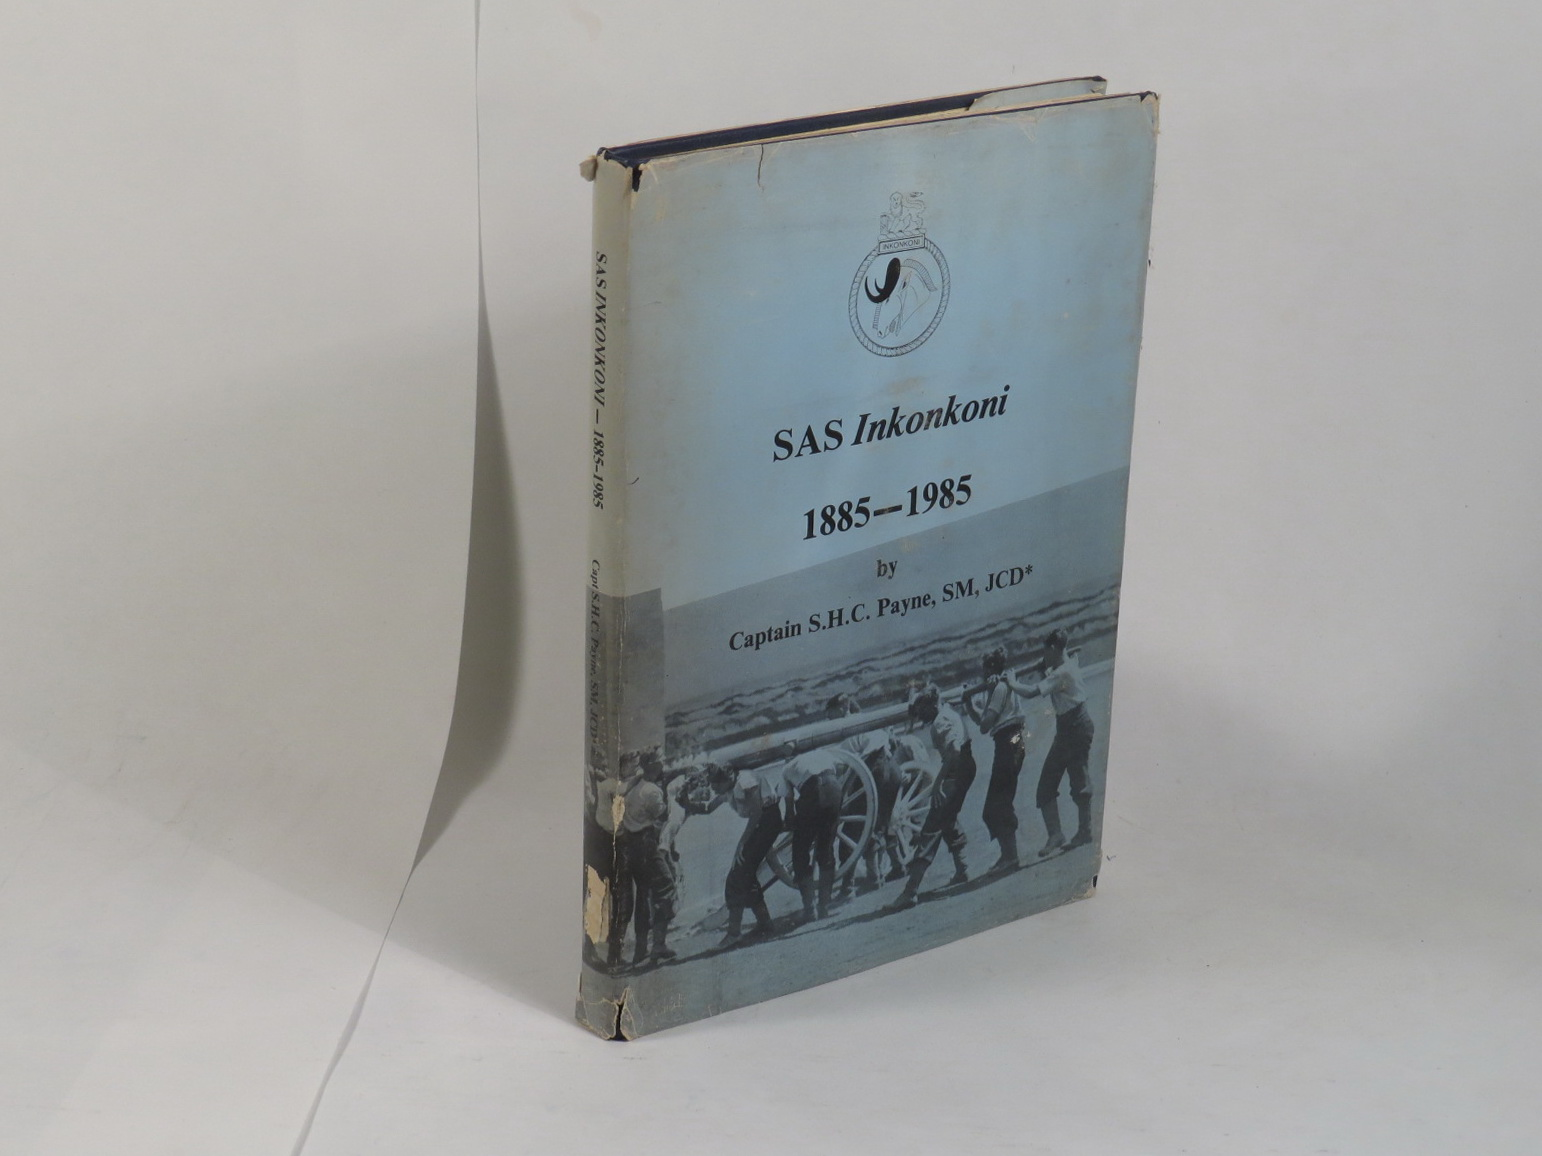 Image for SAS Inkonkoni 1885-1985